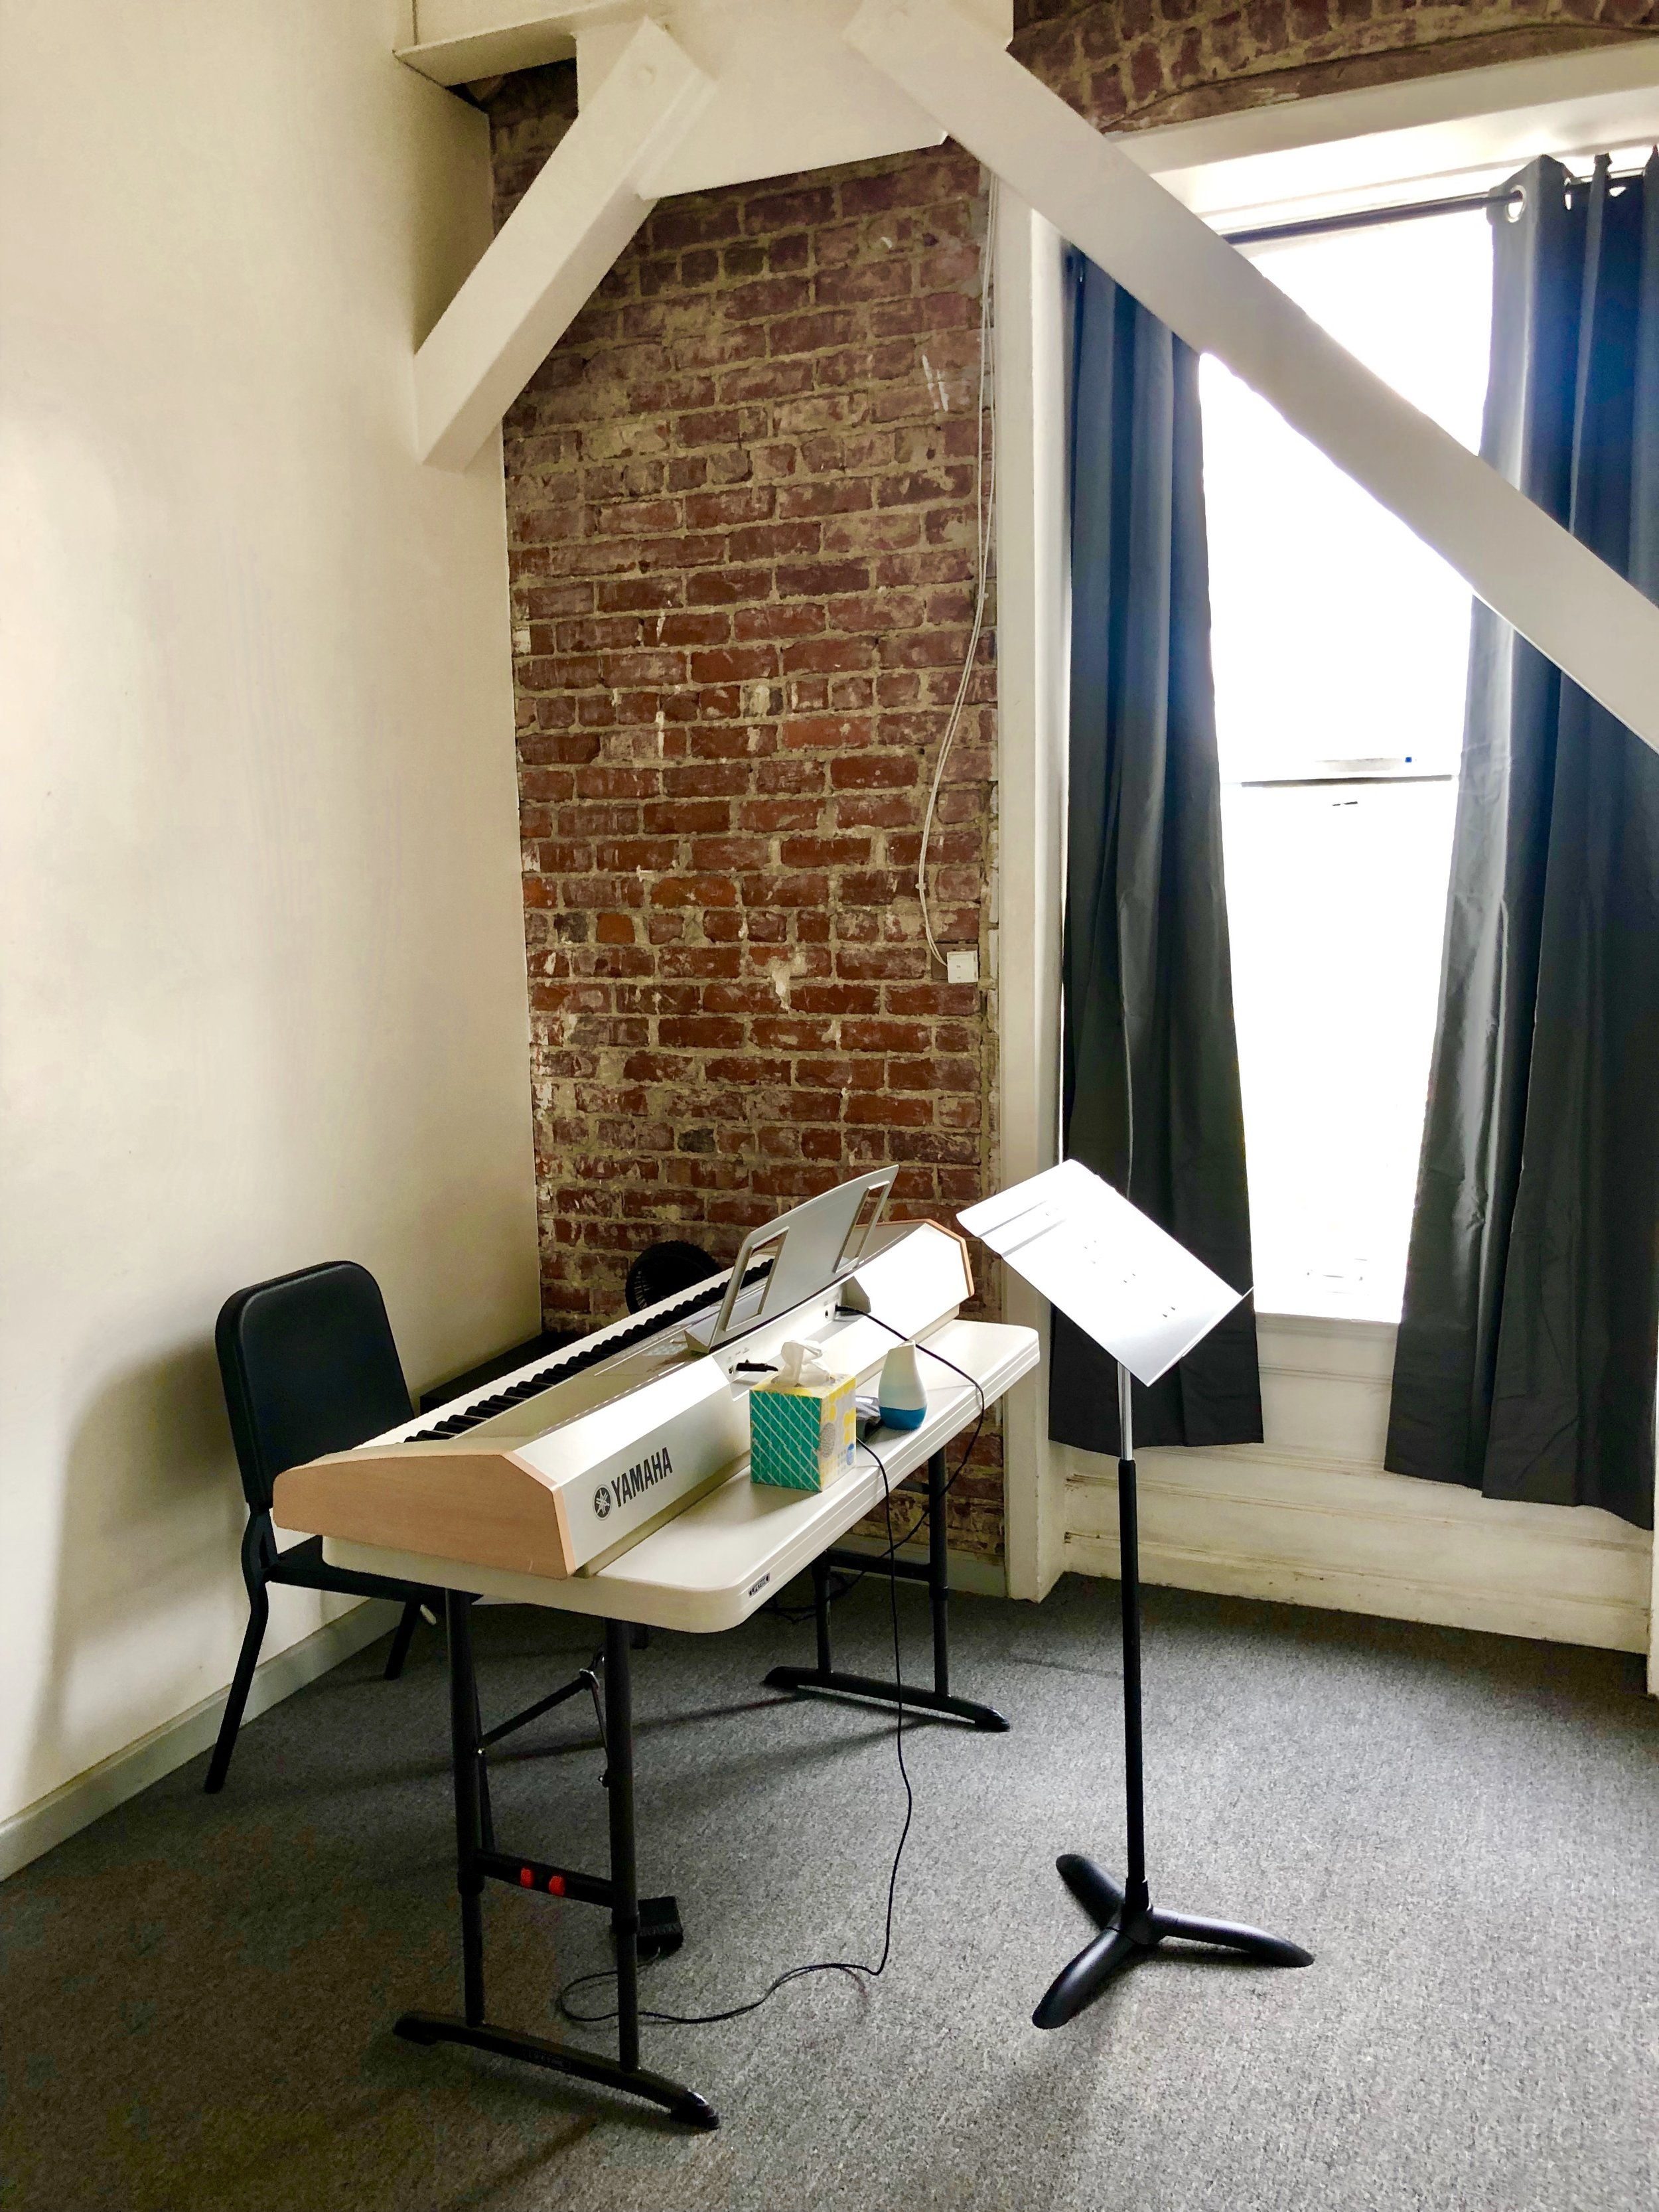 Studio 2 Uses: Lessons, practice, rehearsals for 2-3 people, meetings